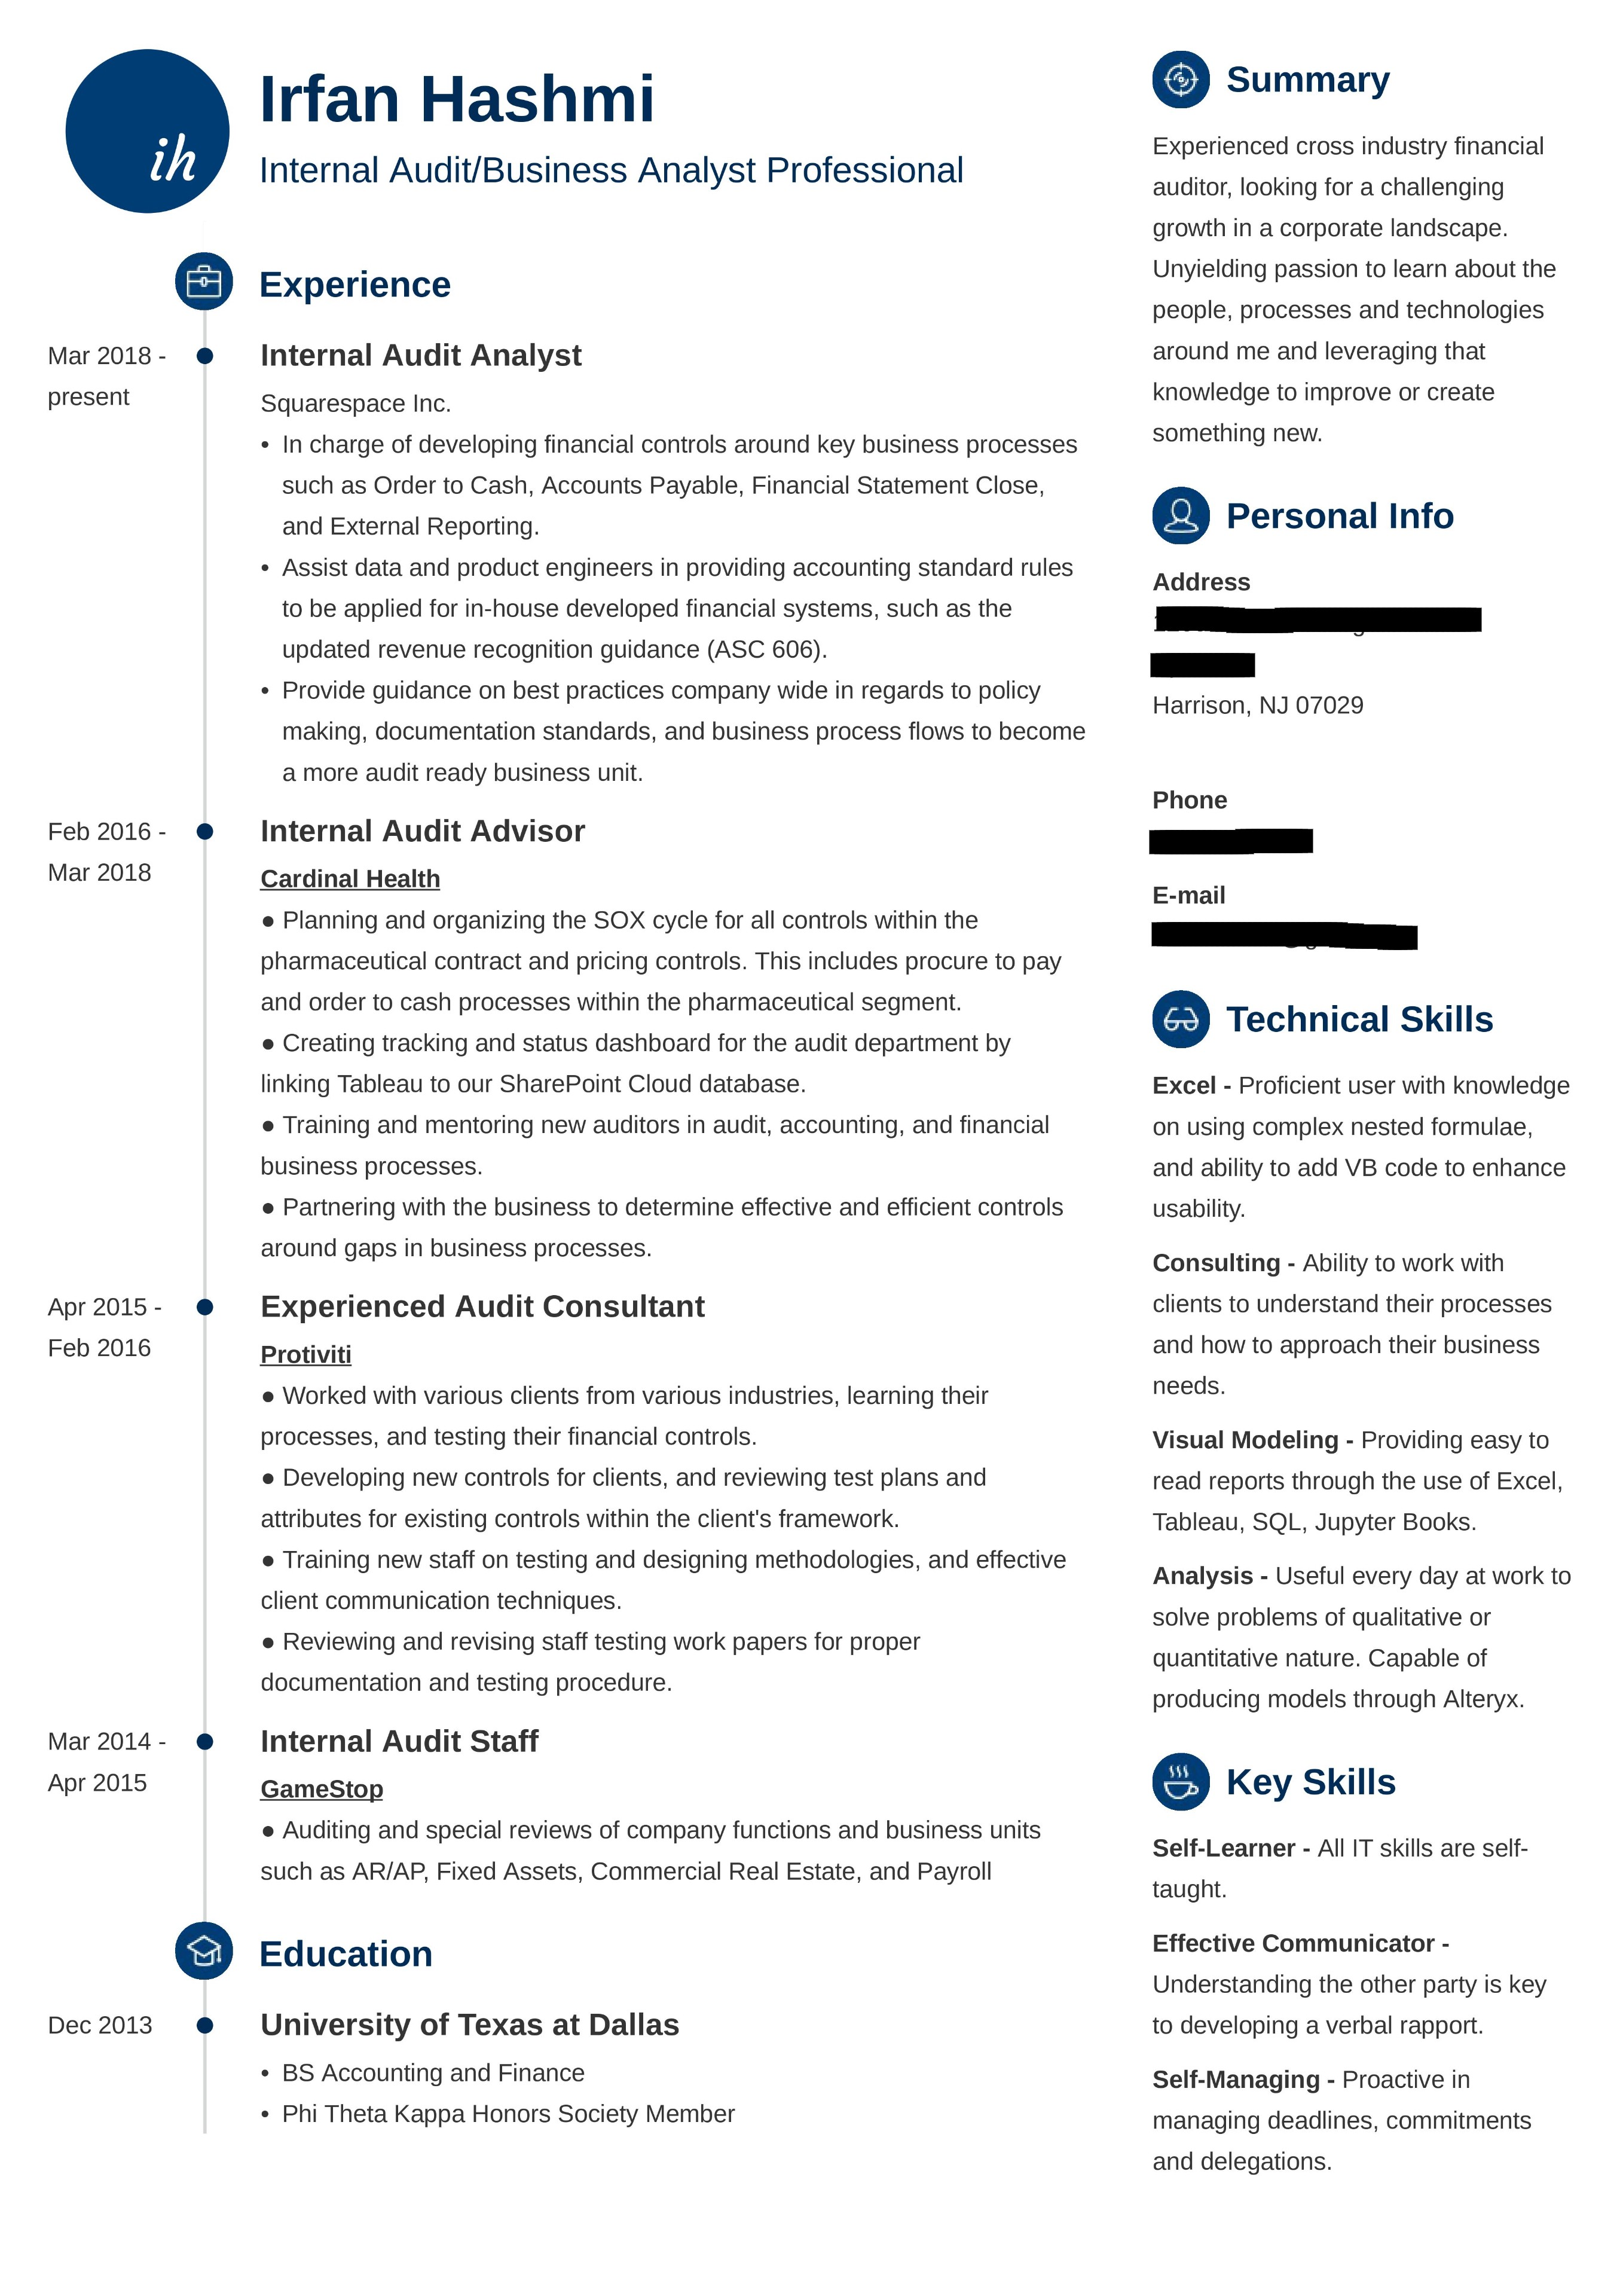 how to redesign a resume for a career change irfan